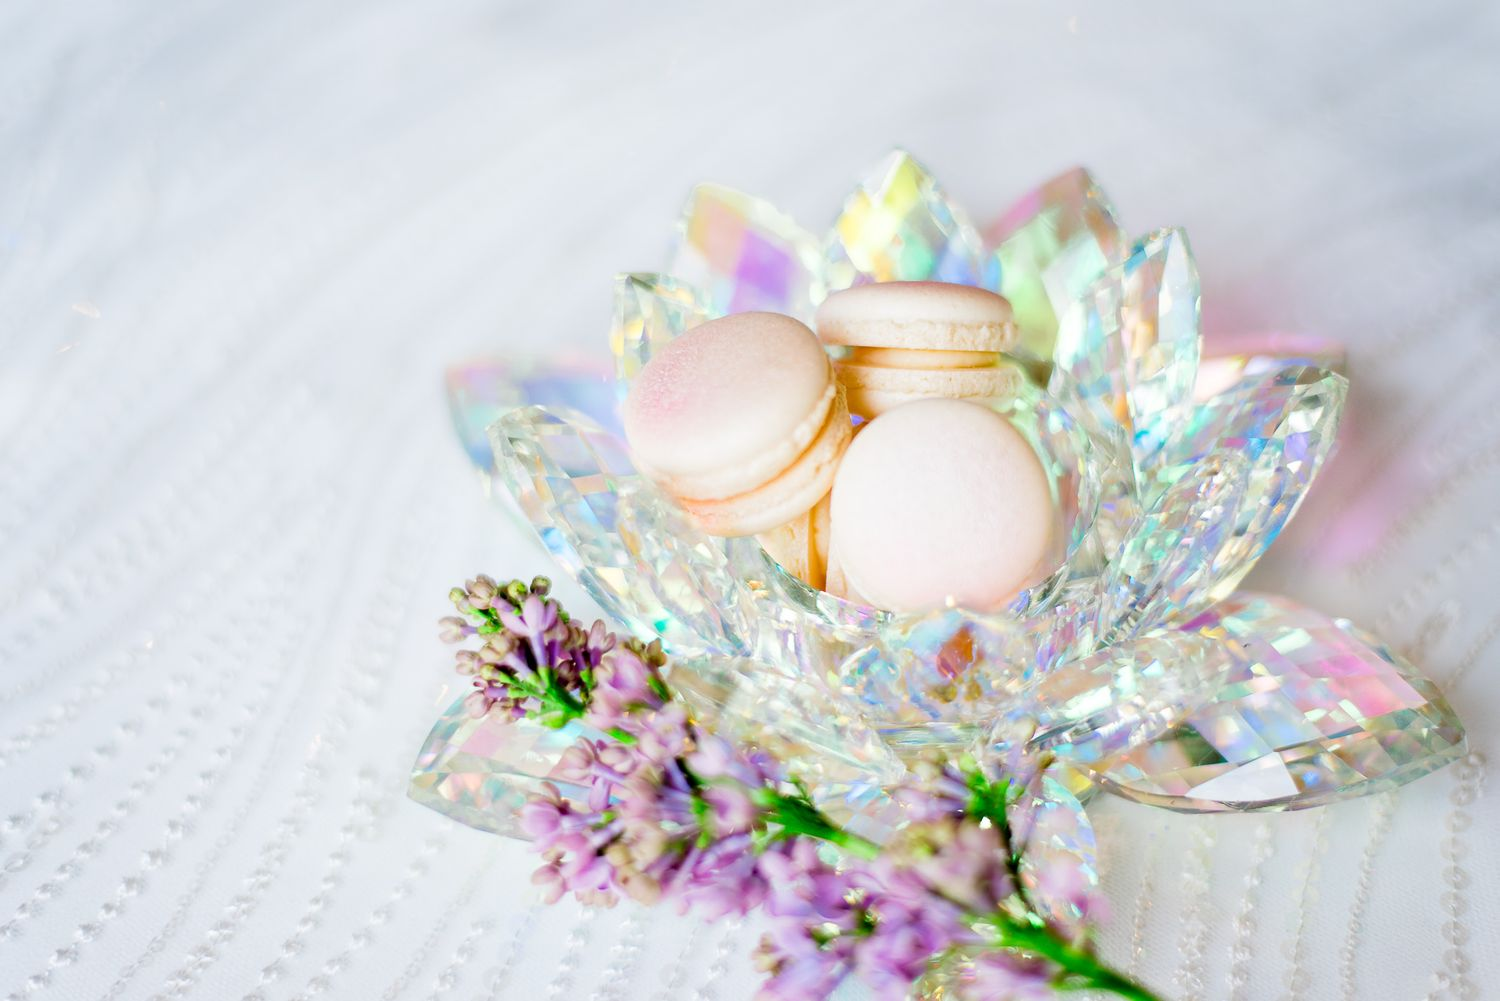 iridescent crystal bowl full of pink glitter macarons on top of sequin wedding dress with purple lilac